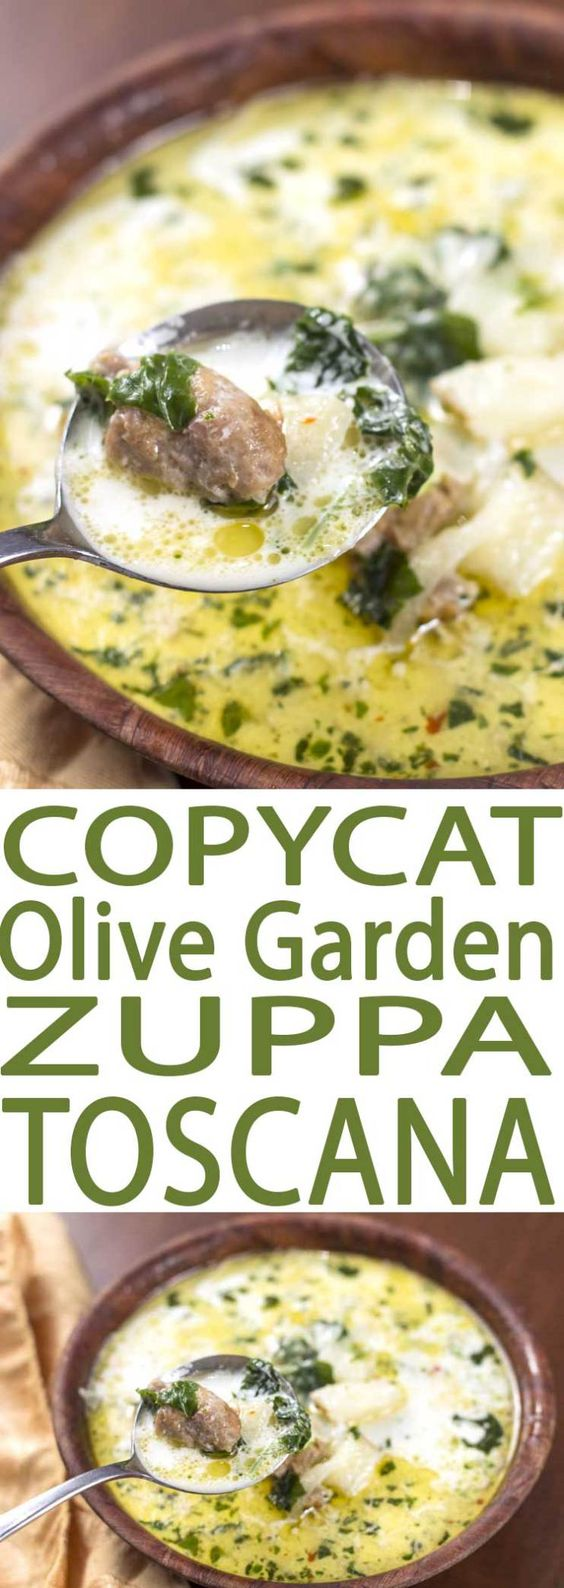 BEST COPYCAT ZUPPA TOSCANA SOUP RECIPE